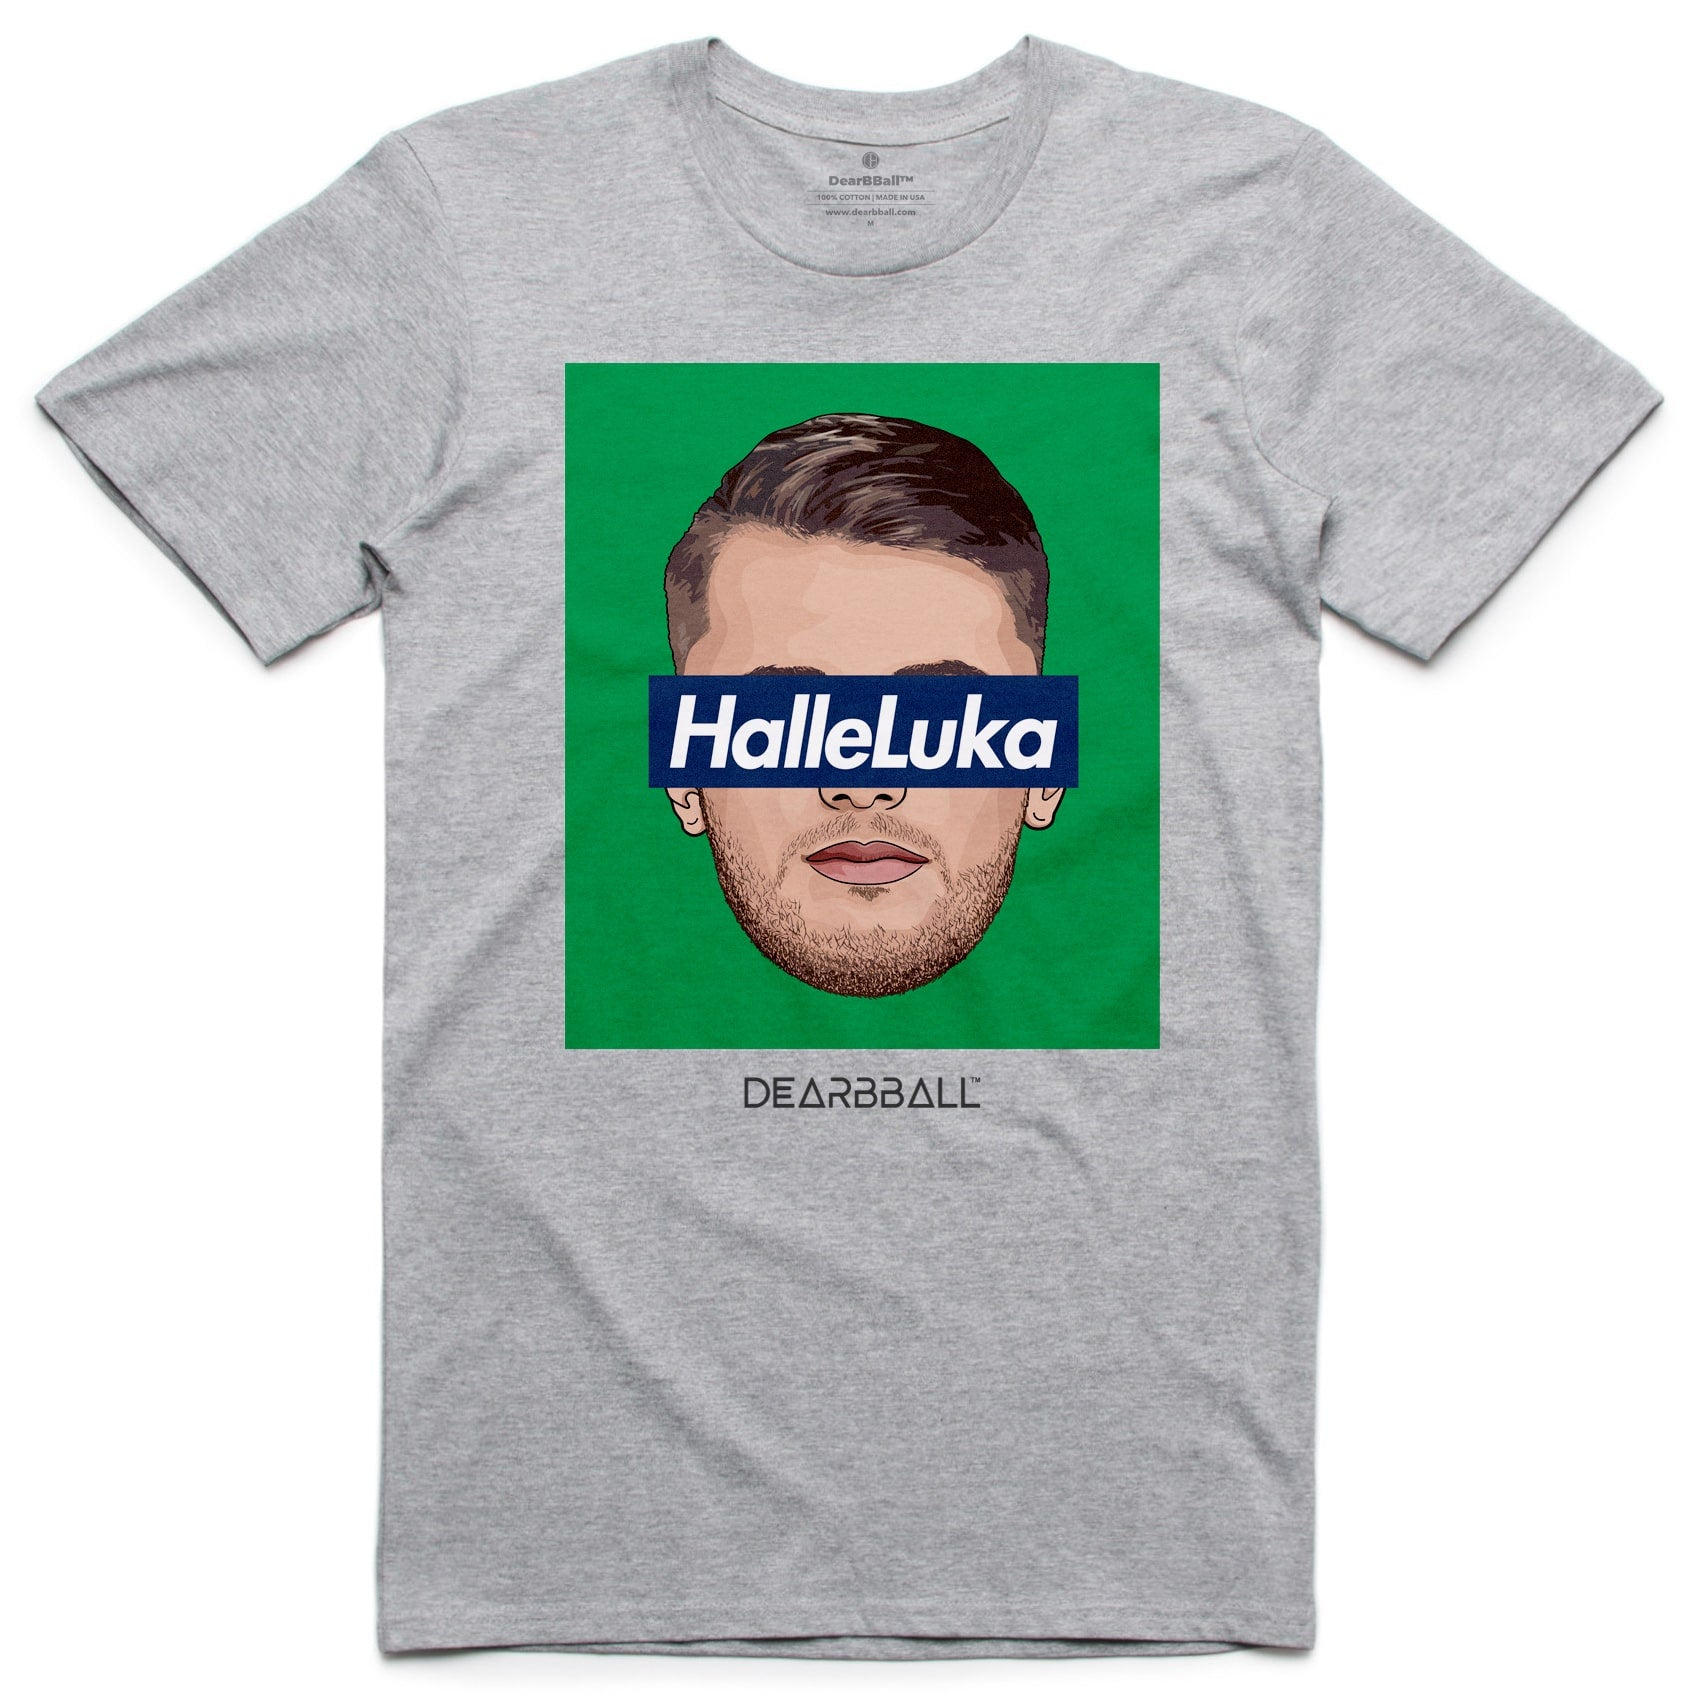 Luka_Doncic_Shirt_HalleLuka_Green_Dearbball_Grey